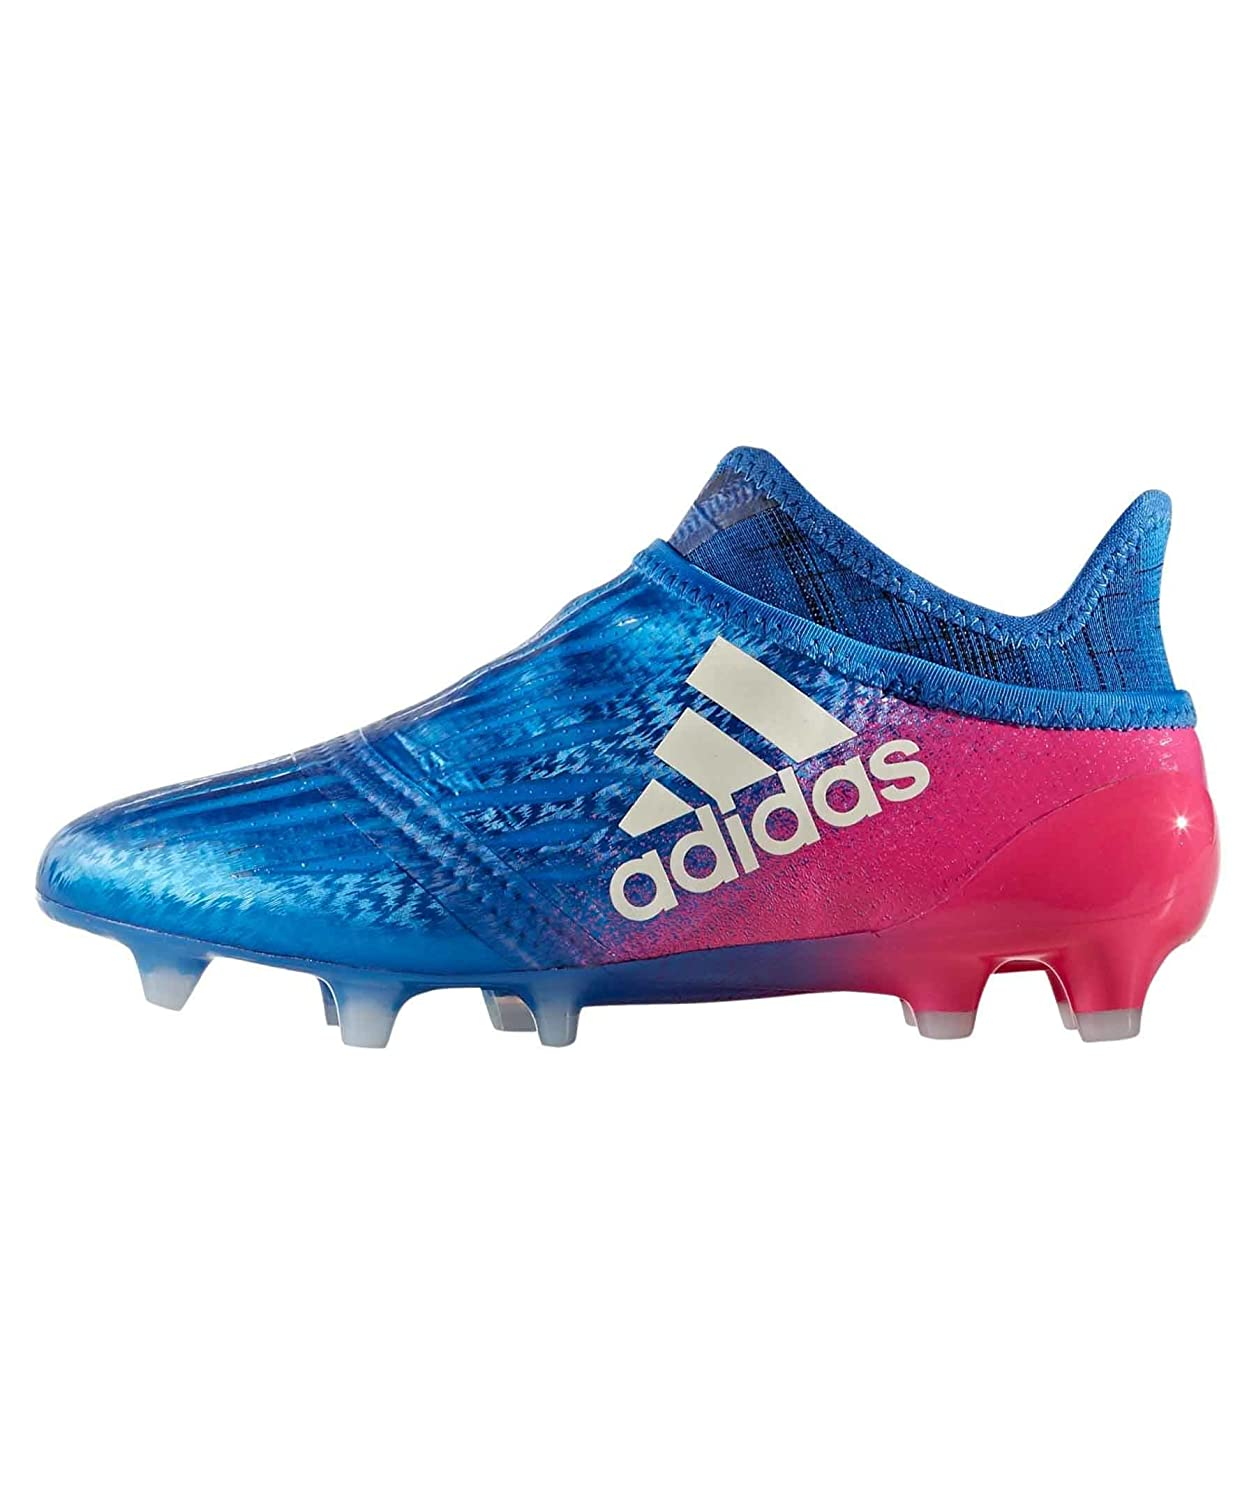 a081589f5ba adidas X 16+ Pure Chaos Kids FG Football Boots - Blue White Shock Pink   Amazon.co.uk  Shoes   Bags